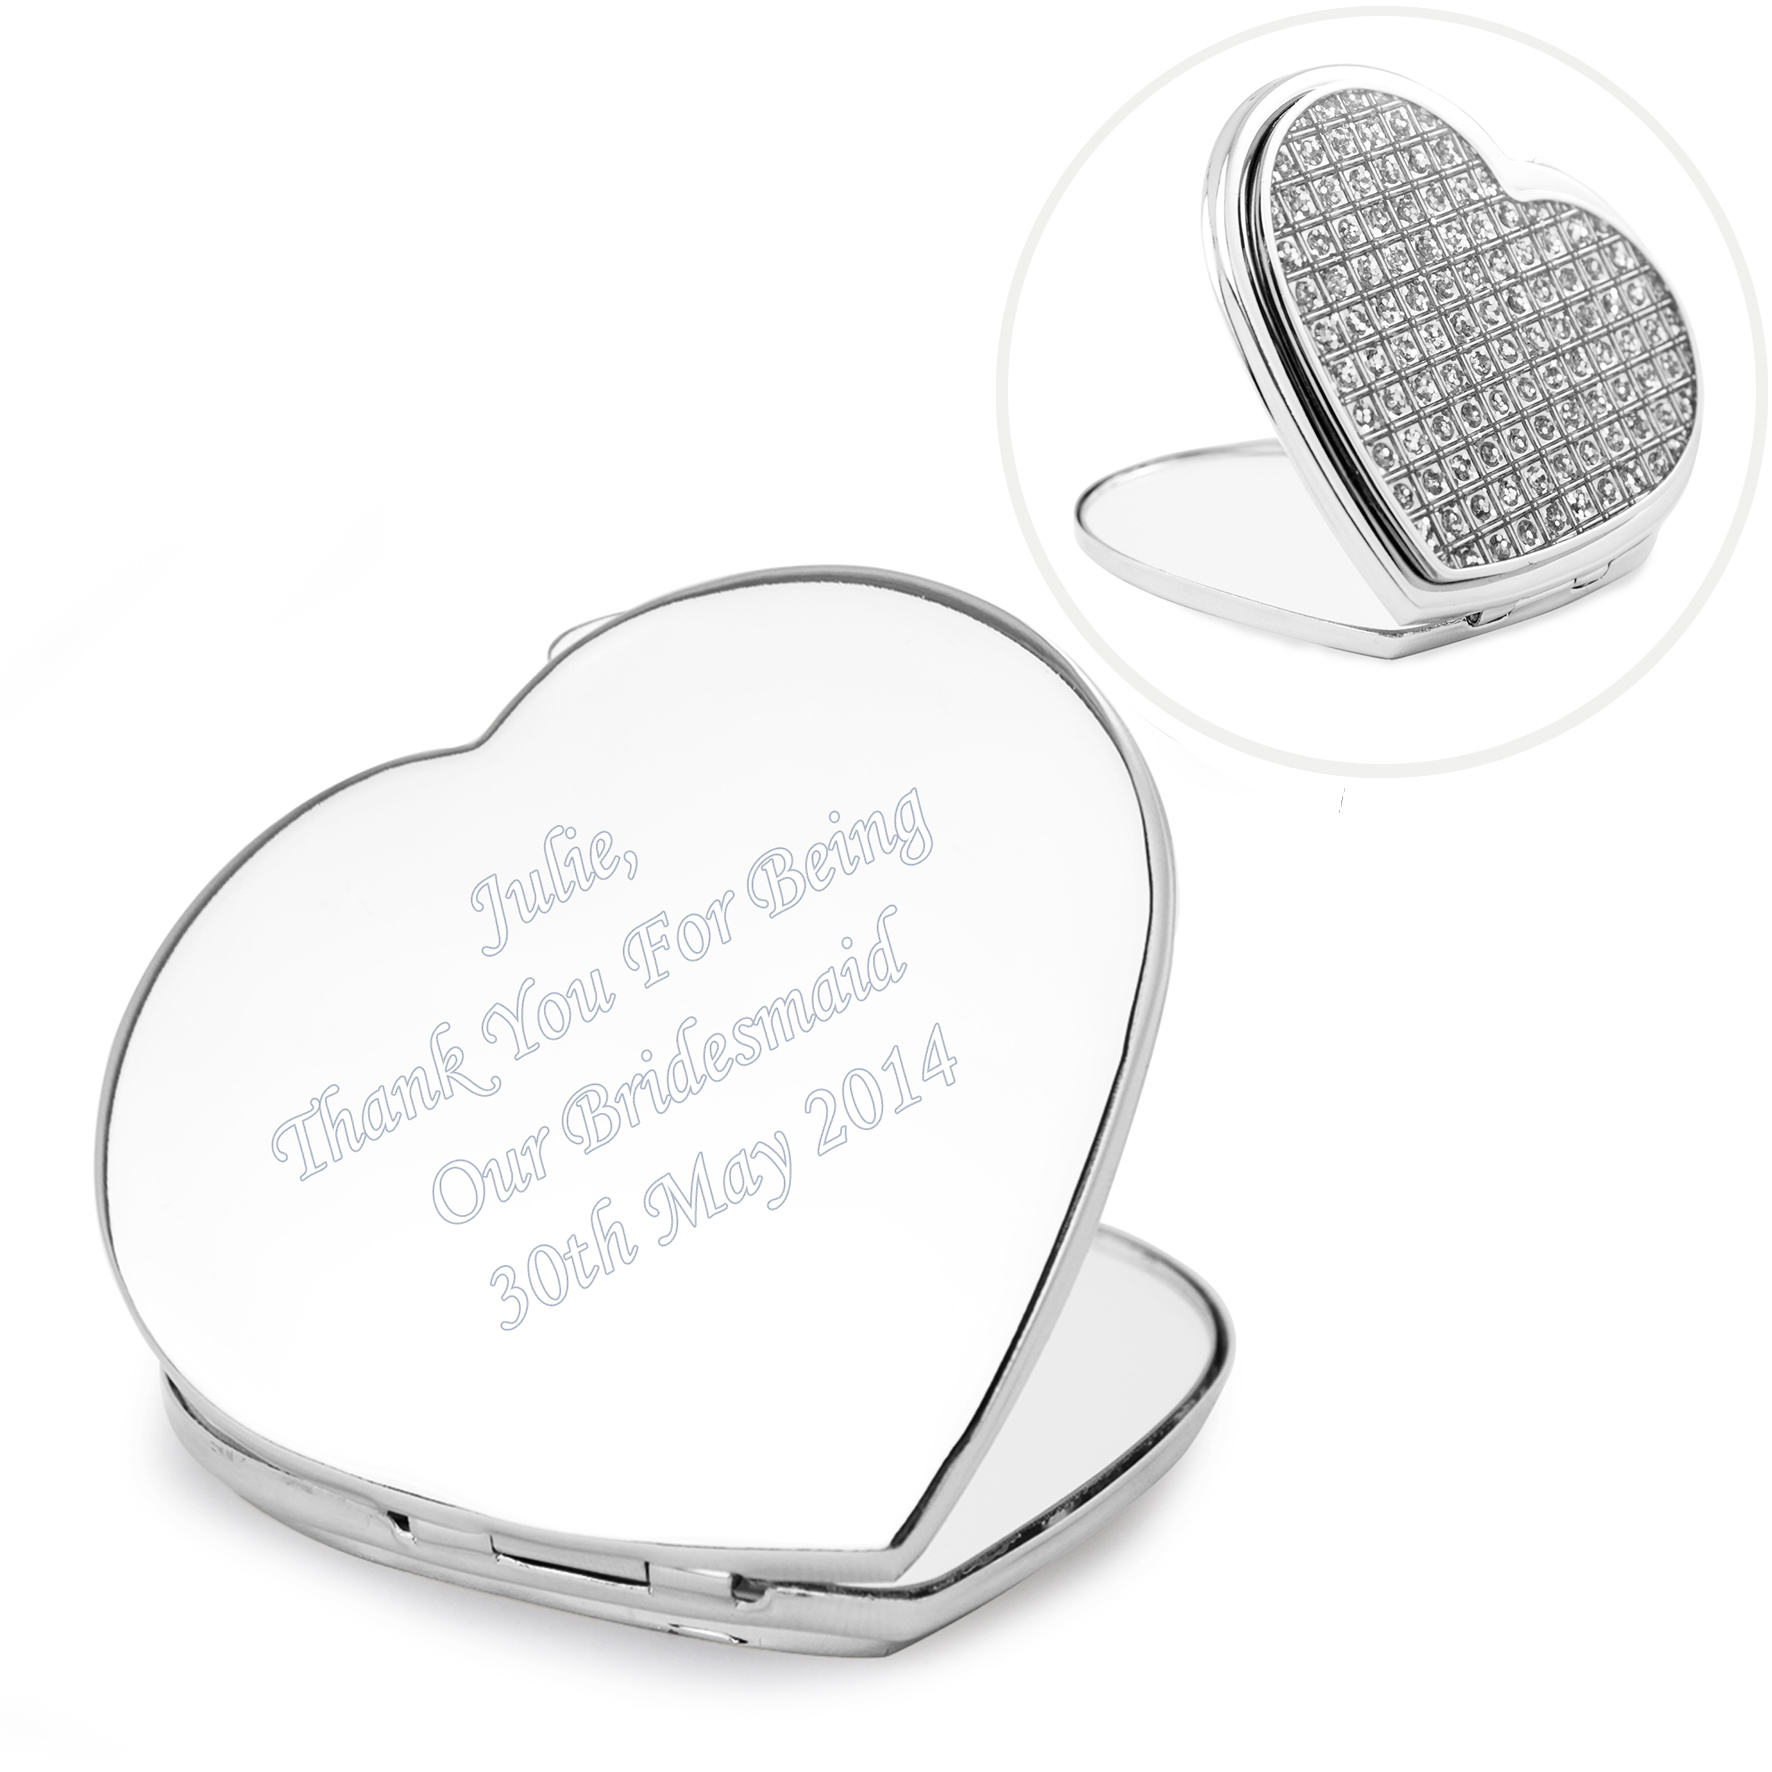 Engraved Diamante Heart Compact